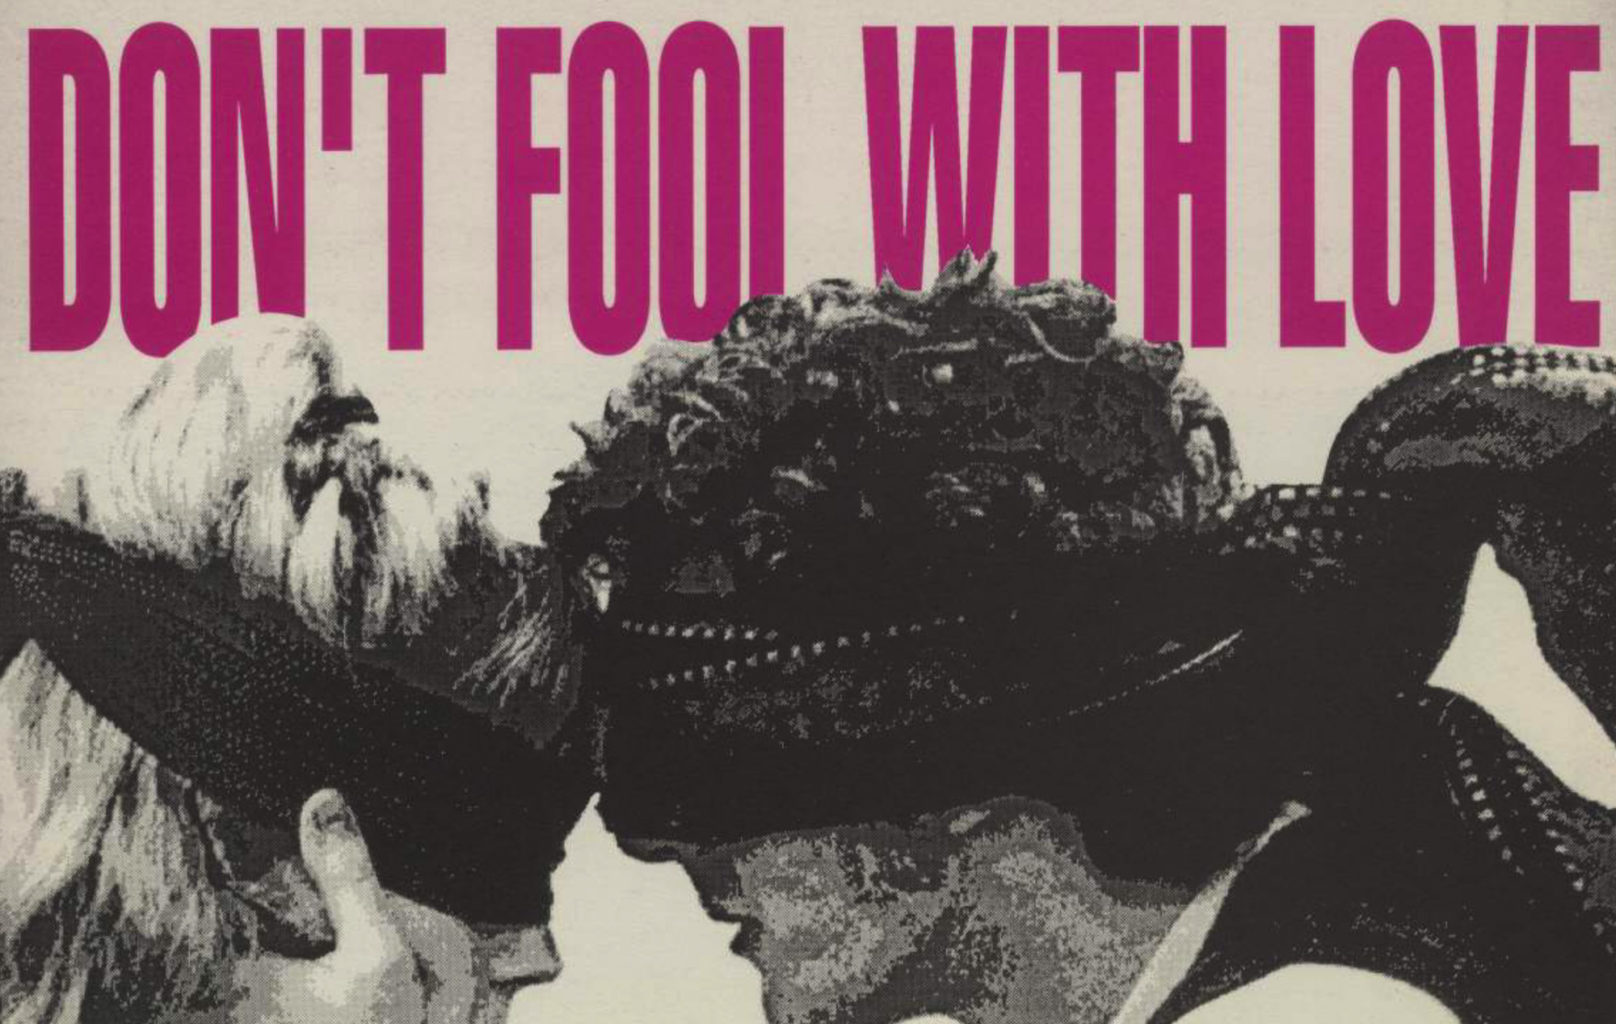 Programme for Cheek by Jowl's productions of Don't Fool With Love / The Blind Men